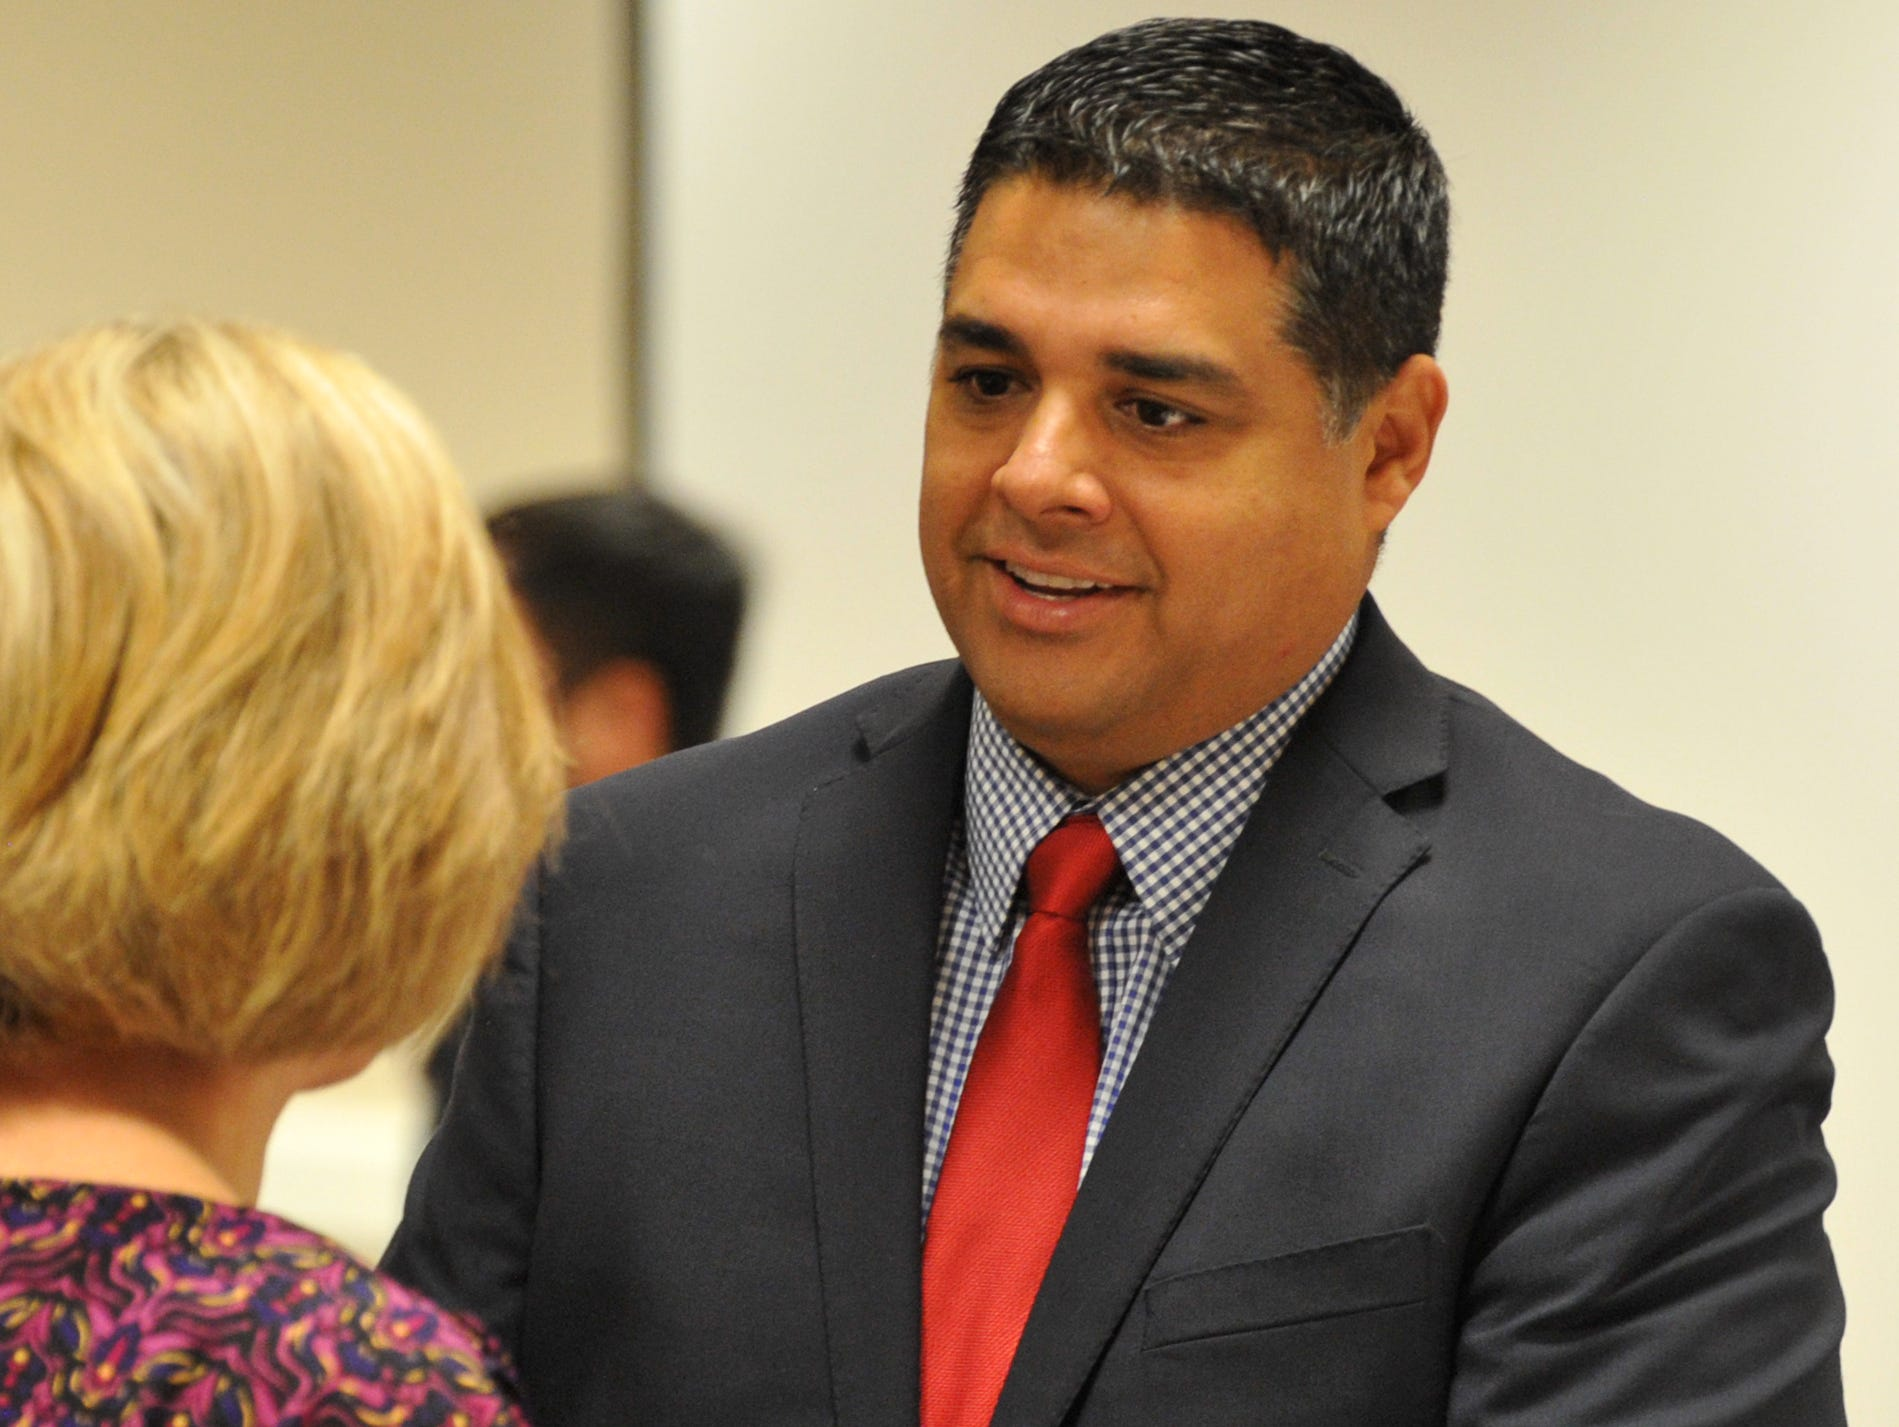 Wichita Falls Mayor, Stephen Santellana was one of several city dignitaries to attend the idea WF award ceremony Wednesday morning.